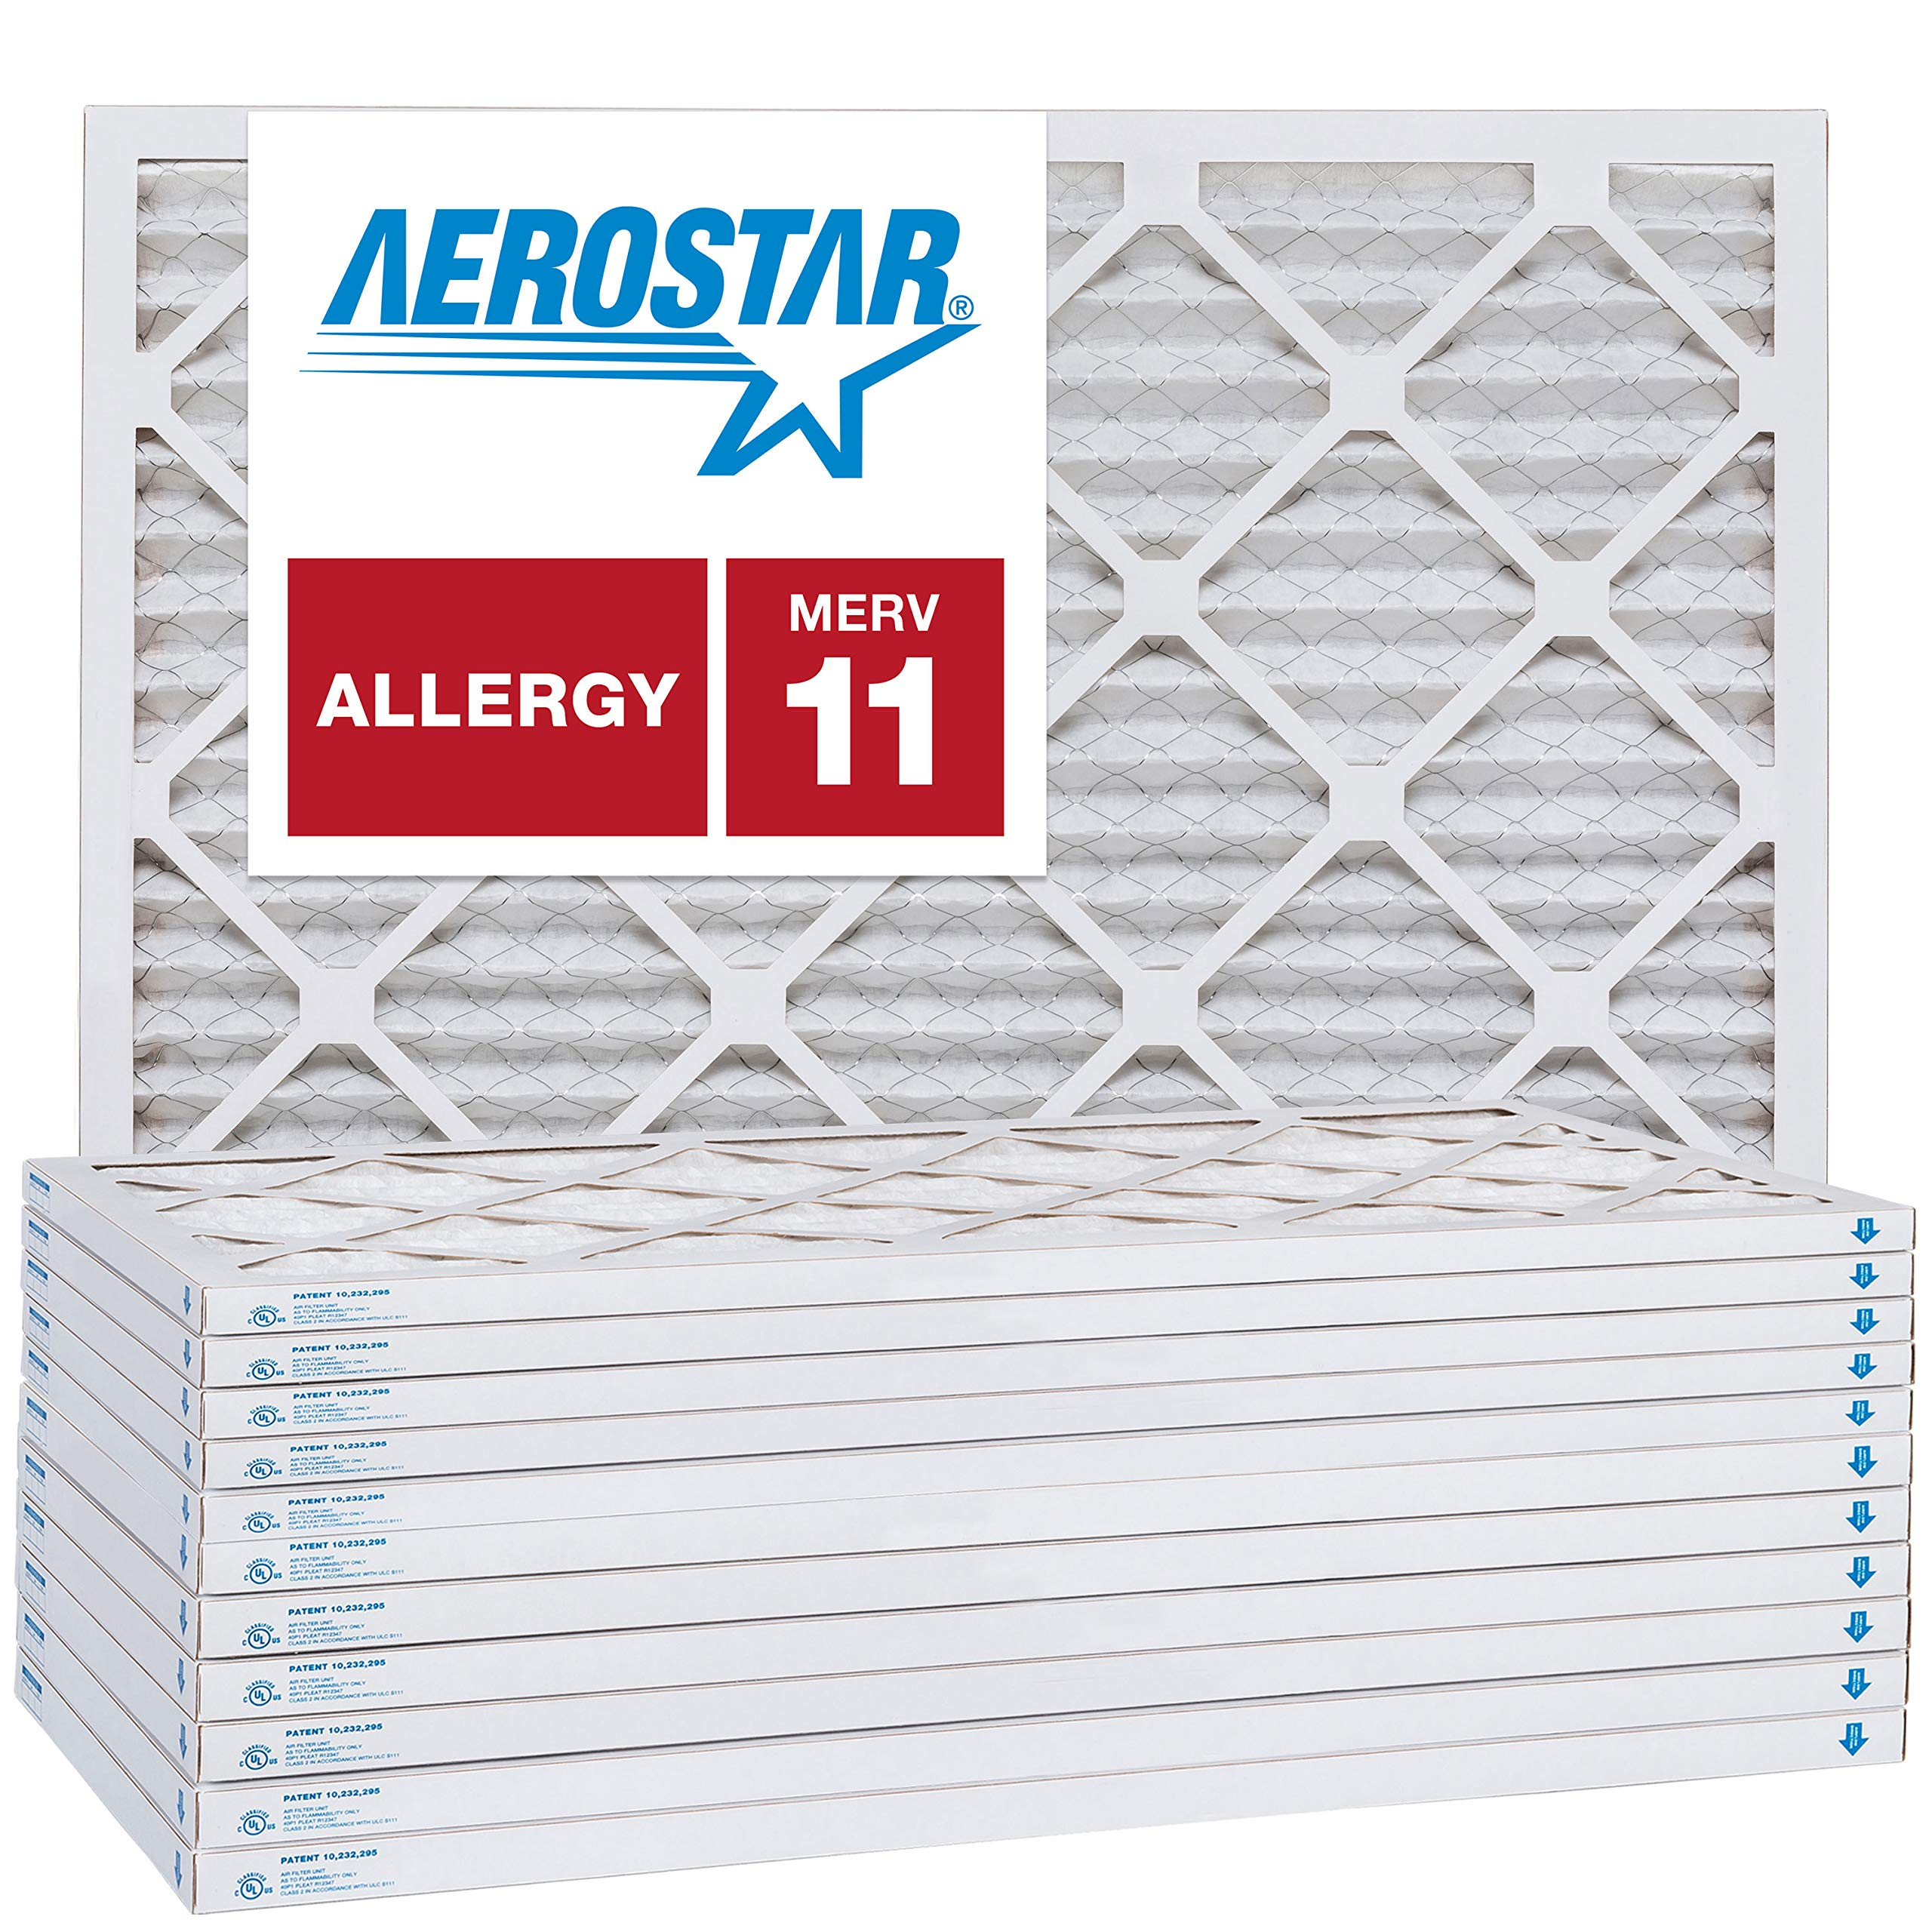 19 7/8 x 21 1/2 x 1 Carrier Replacement Filter by Aerostar - MERV 11, Box of 12